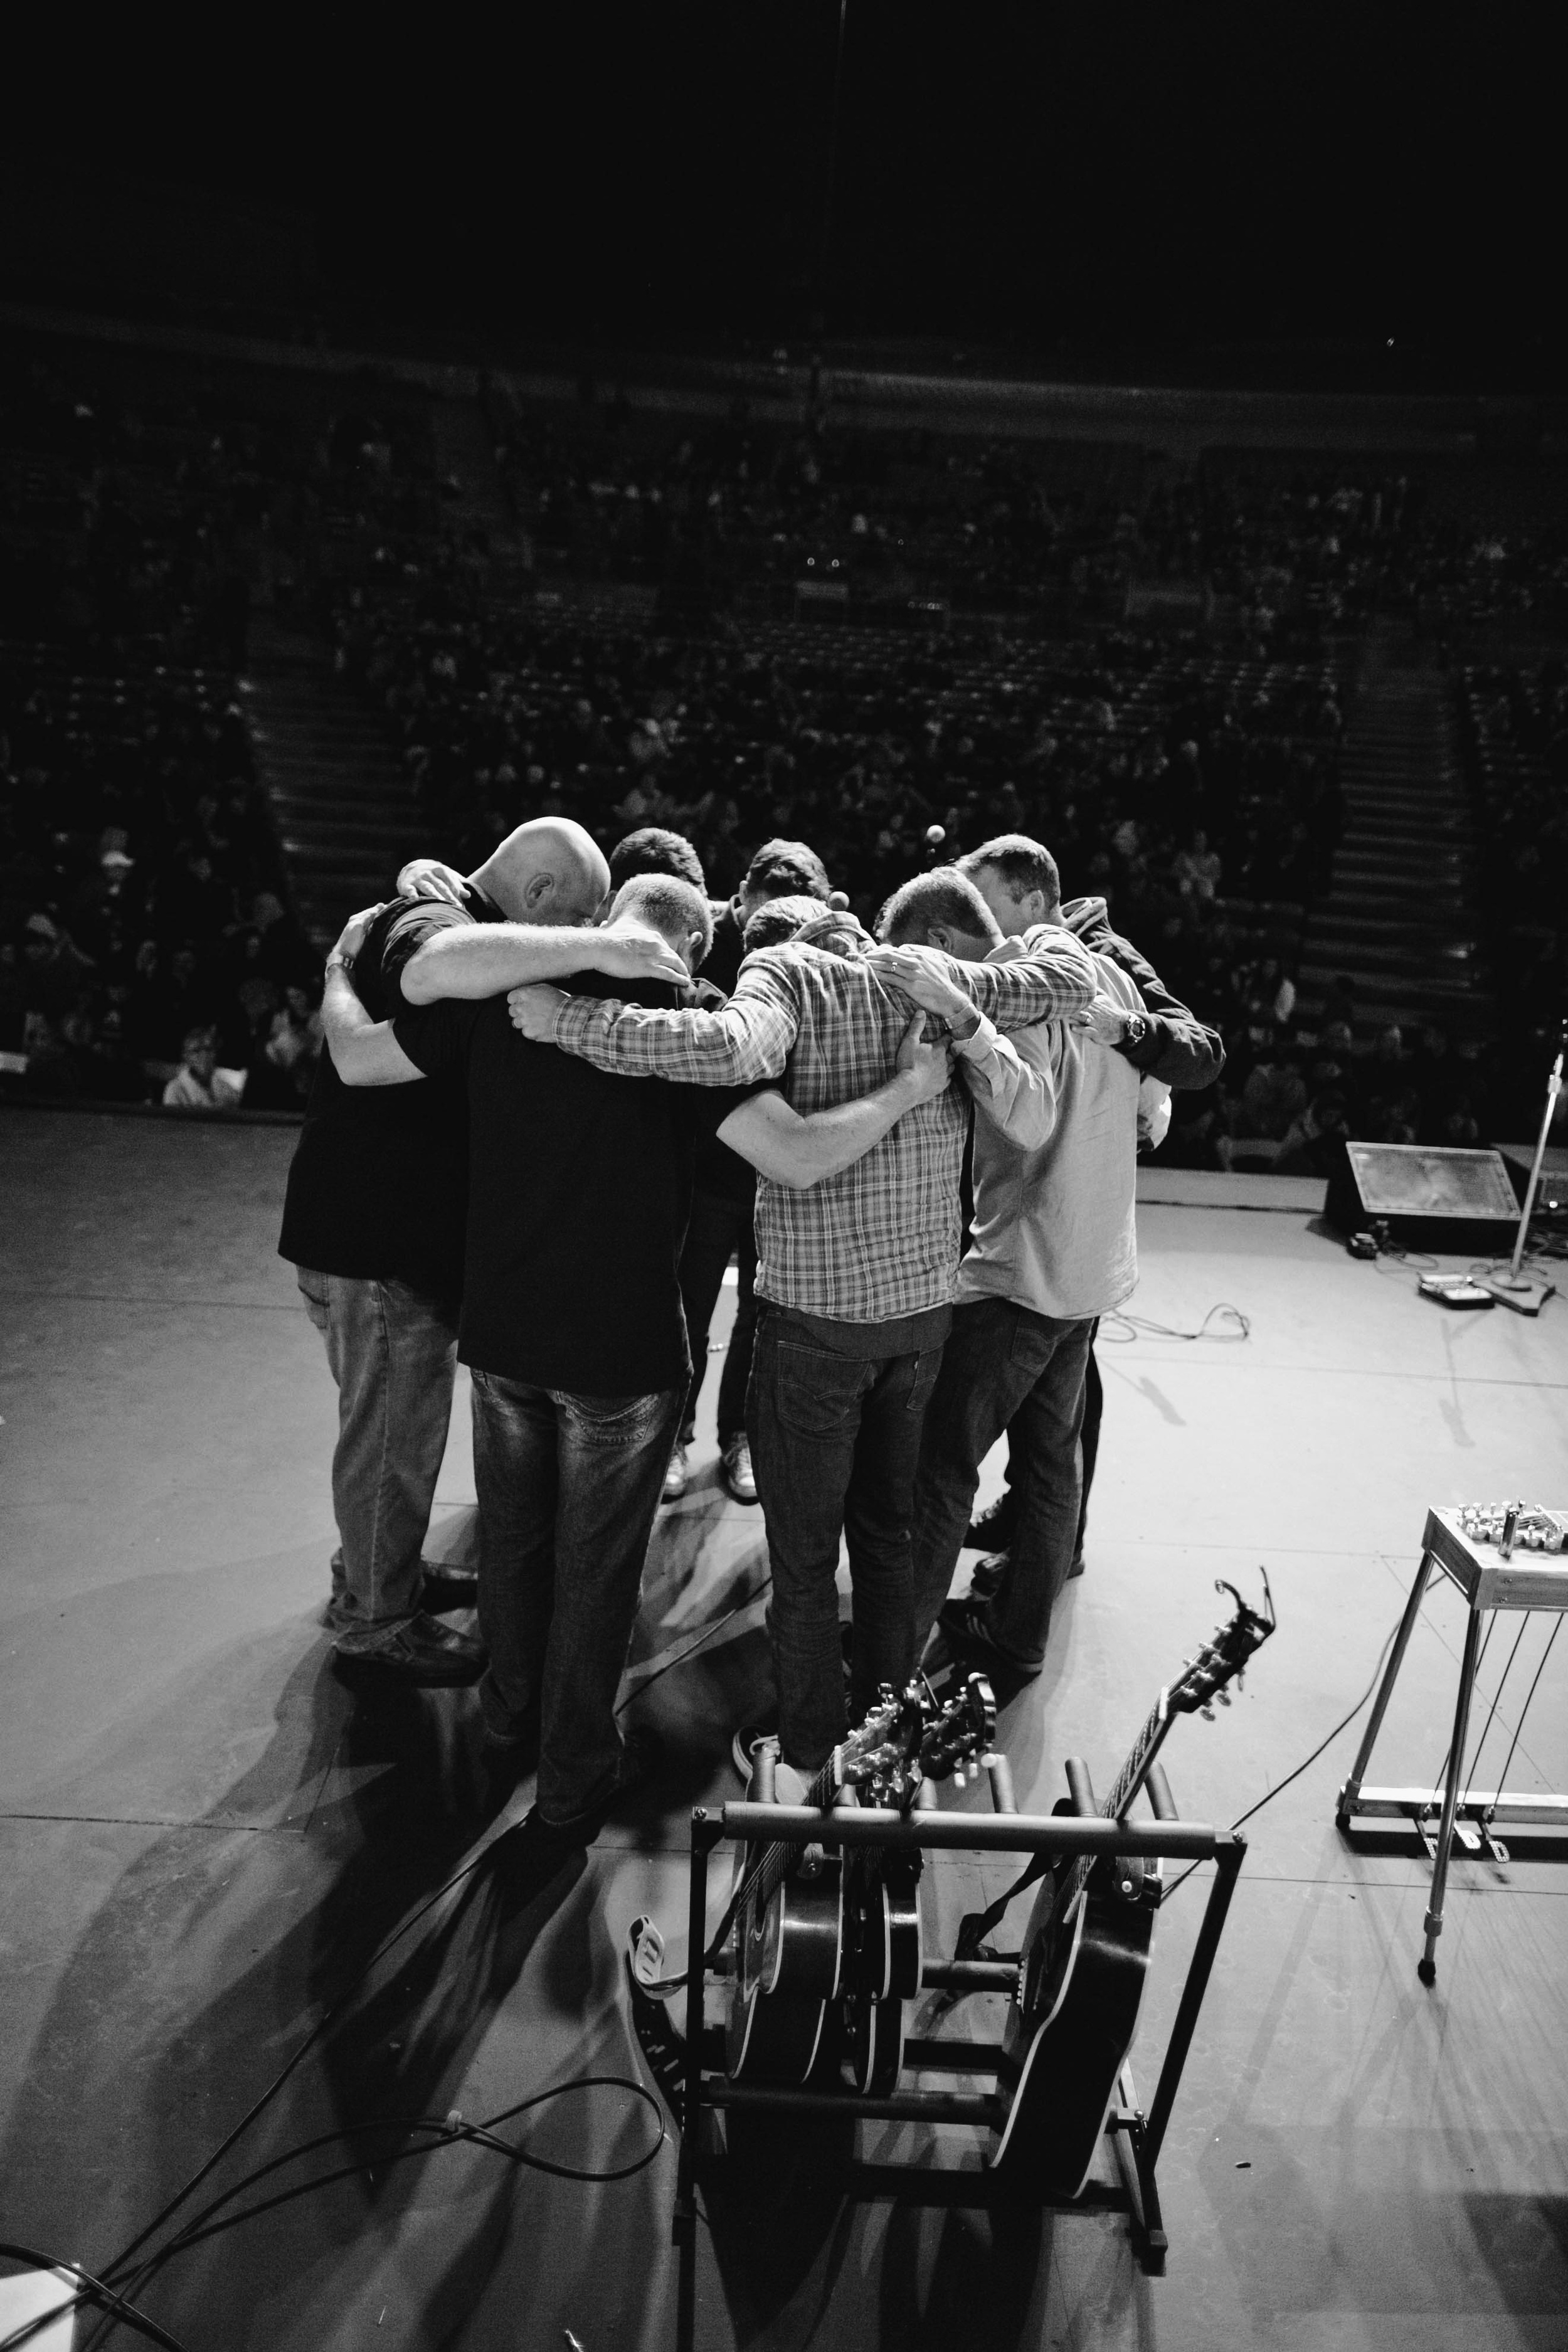 So-Cal pastors praying together at AET 2014 - Verizon Amphitheatre Irvine, CA.